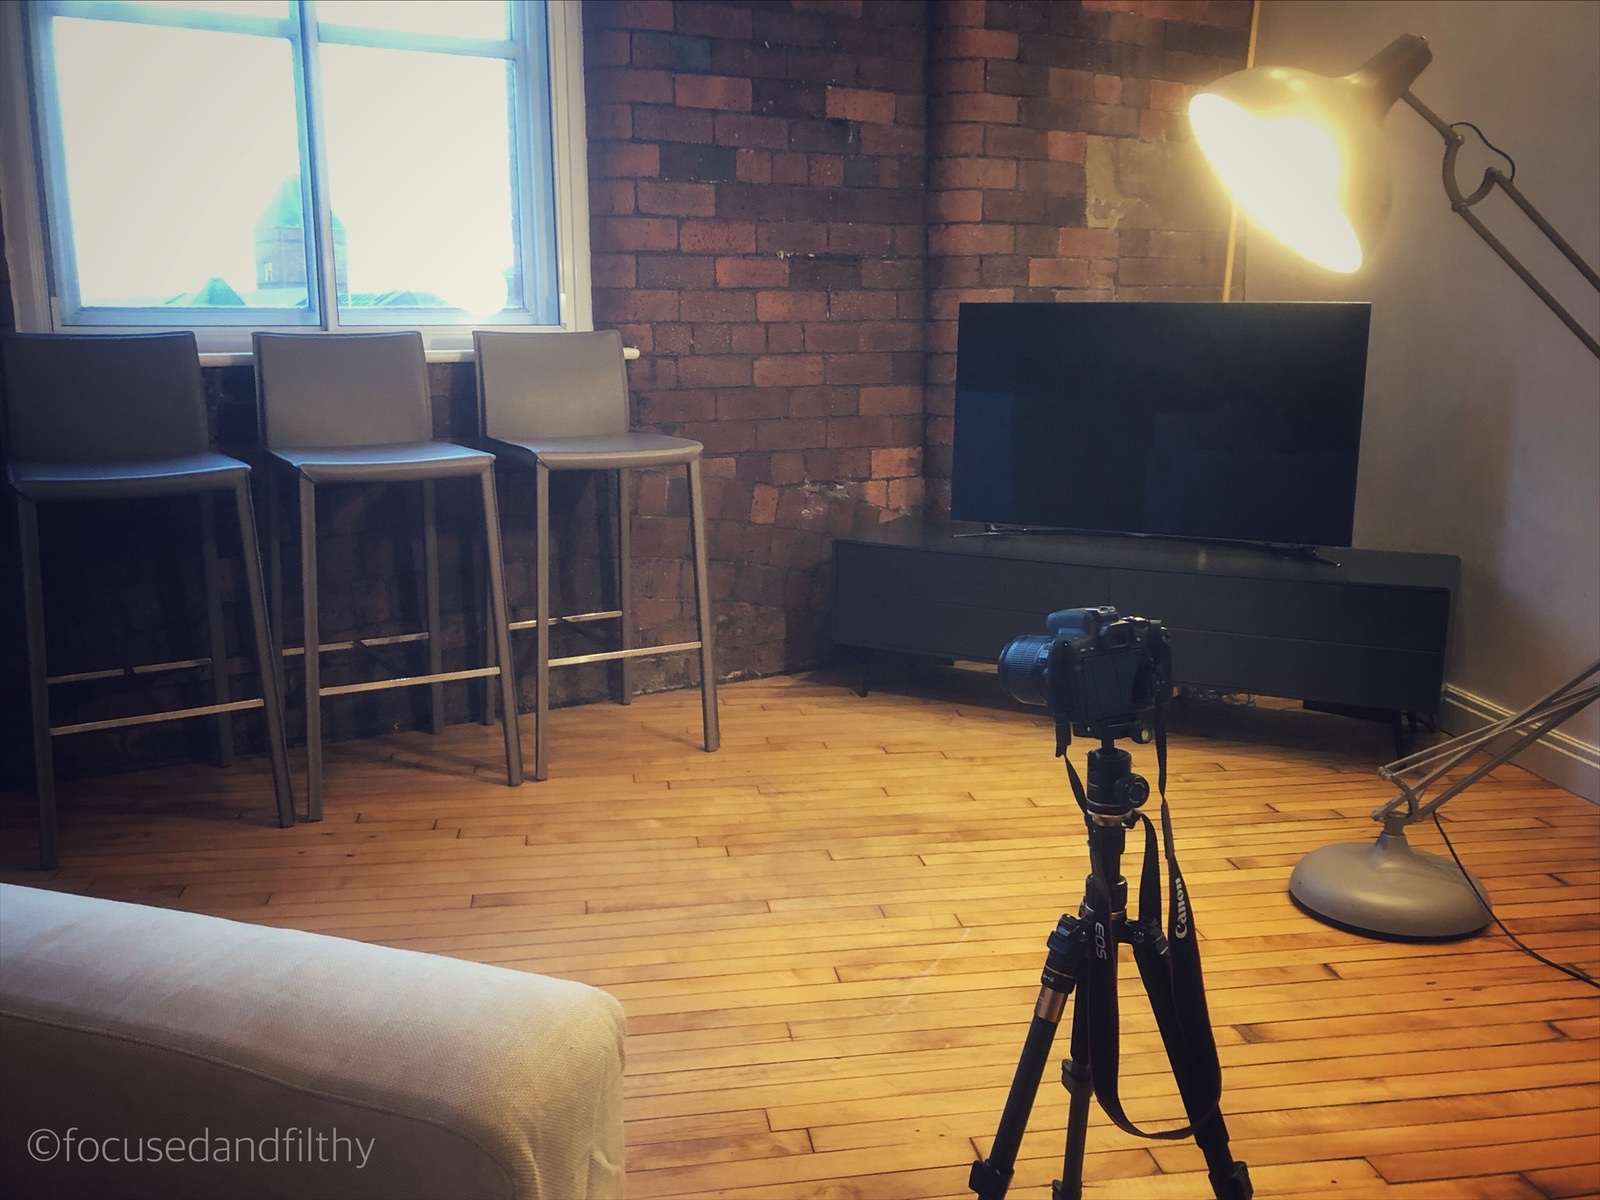 Colour photograph showing a camera on a tripod in a a large room with wooden floors and brick walls and three empty stools facing it